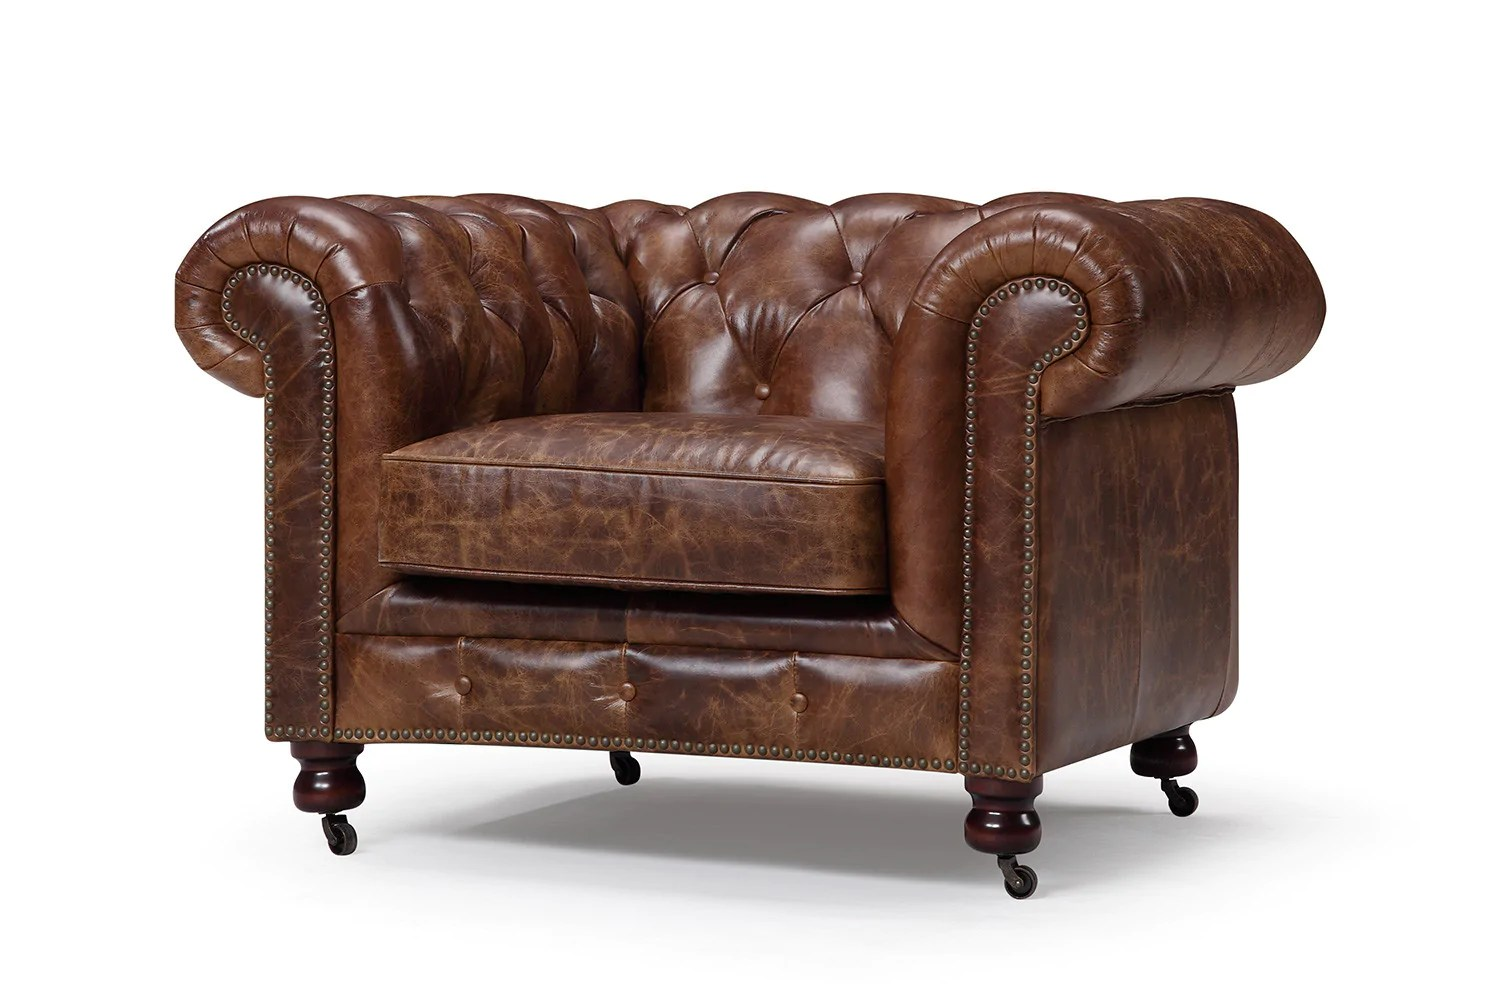 kensington leather chair spandex cover rentals the chesterfield tufted rose and moore